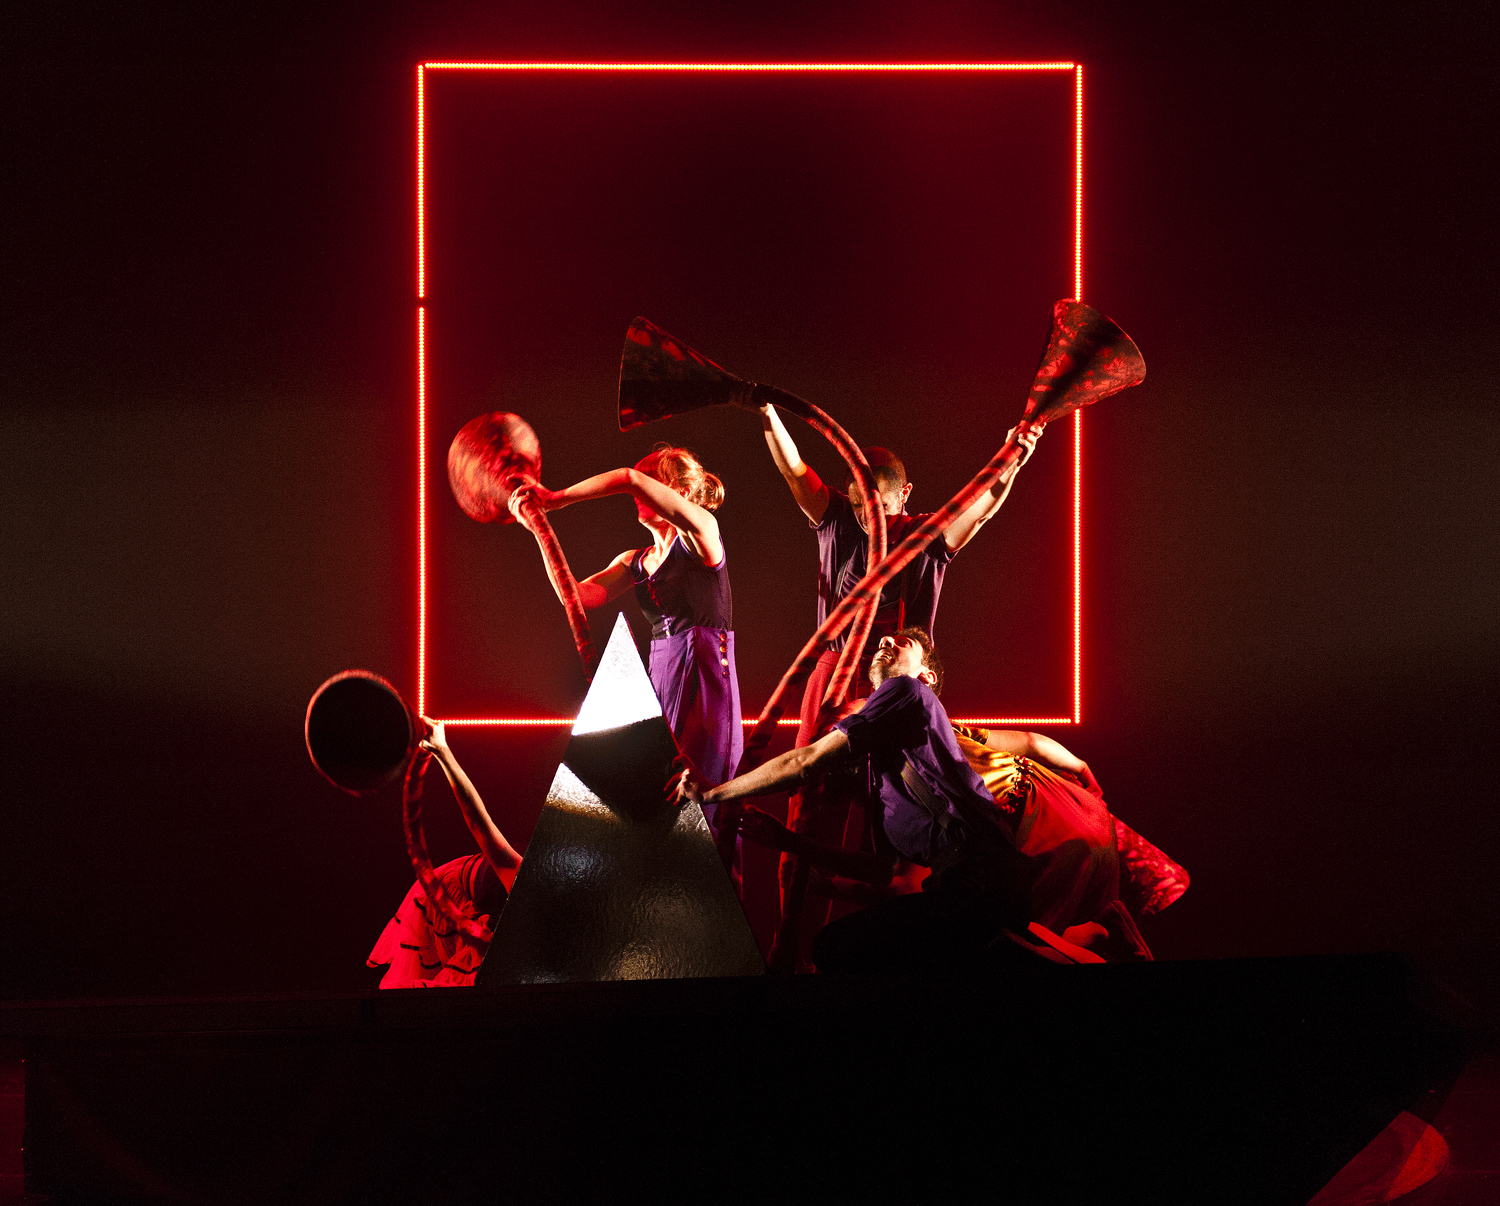 Framed by a red light, a group of performers wrestle with giant red tentacles made out of foam cones